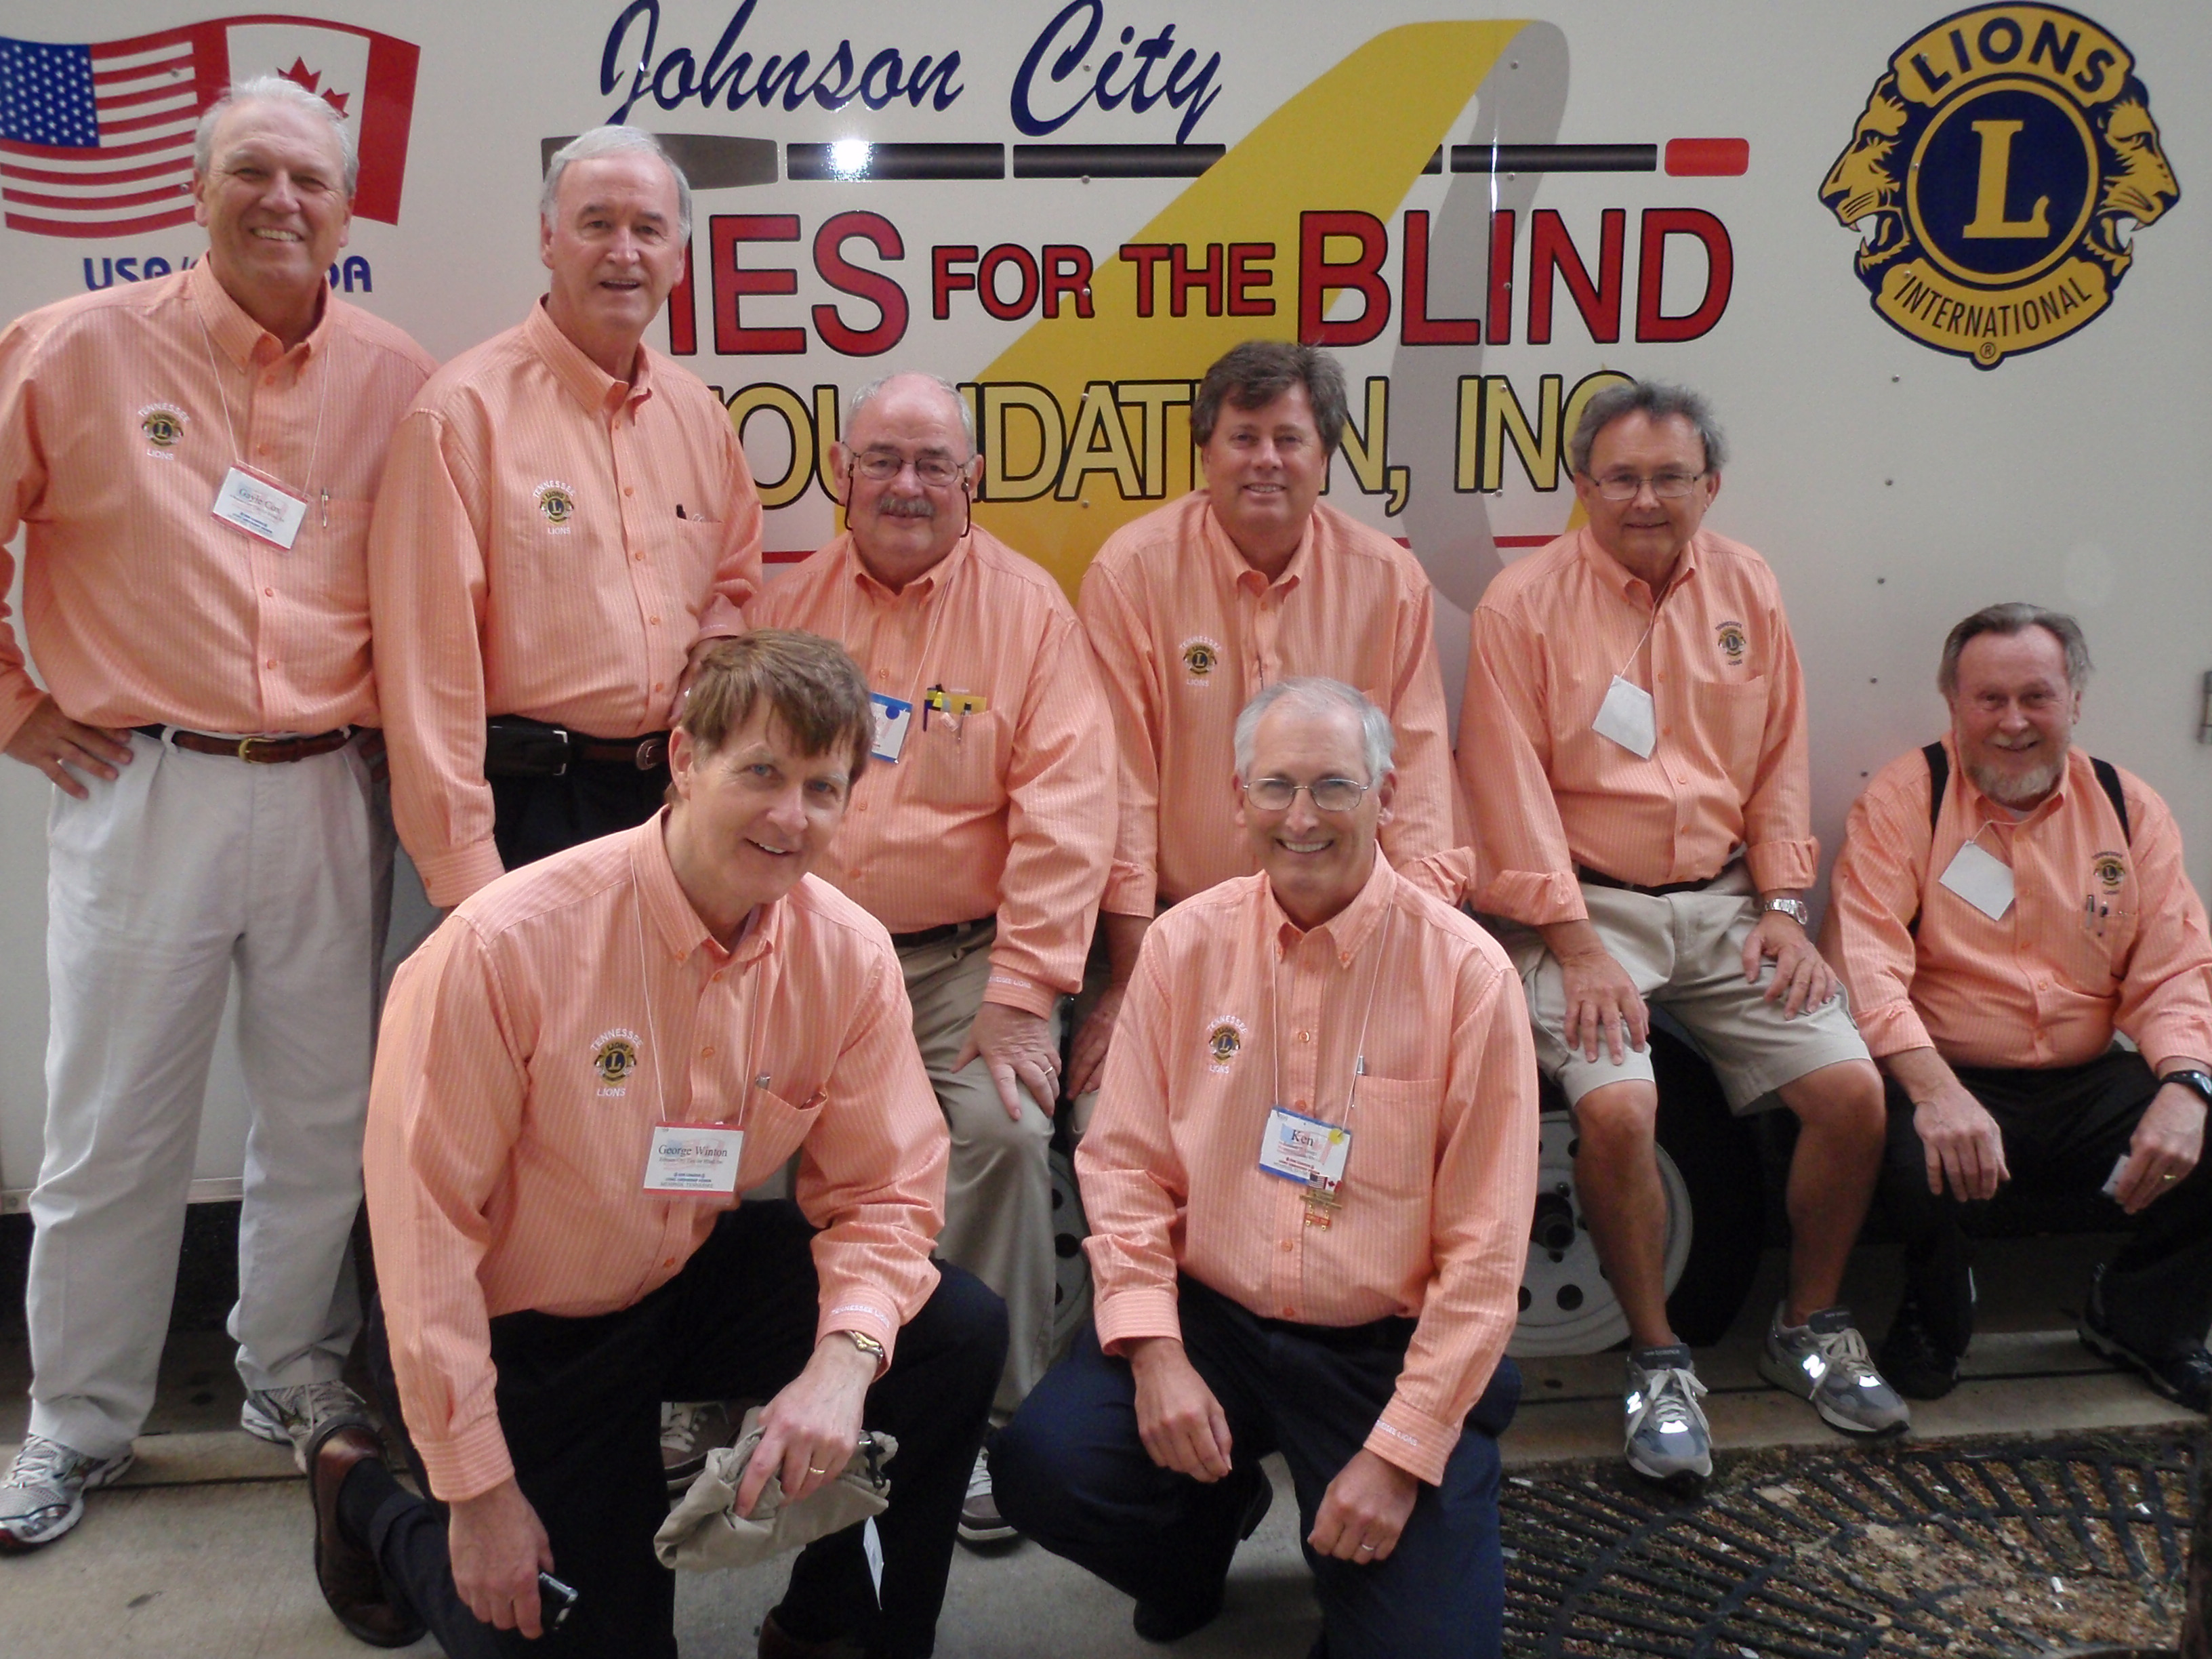 Ties for the Blind at Lions USA-Canada Forum in Memphis, August 2009